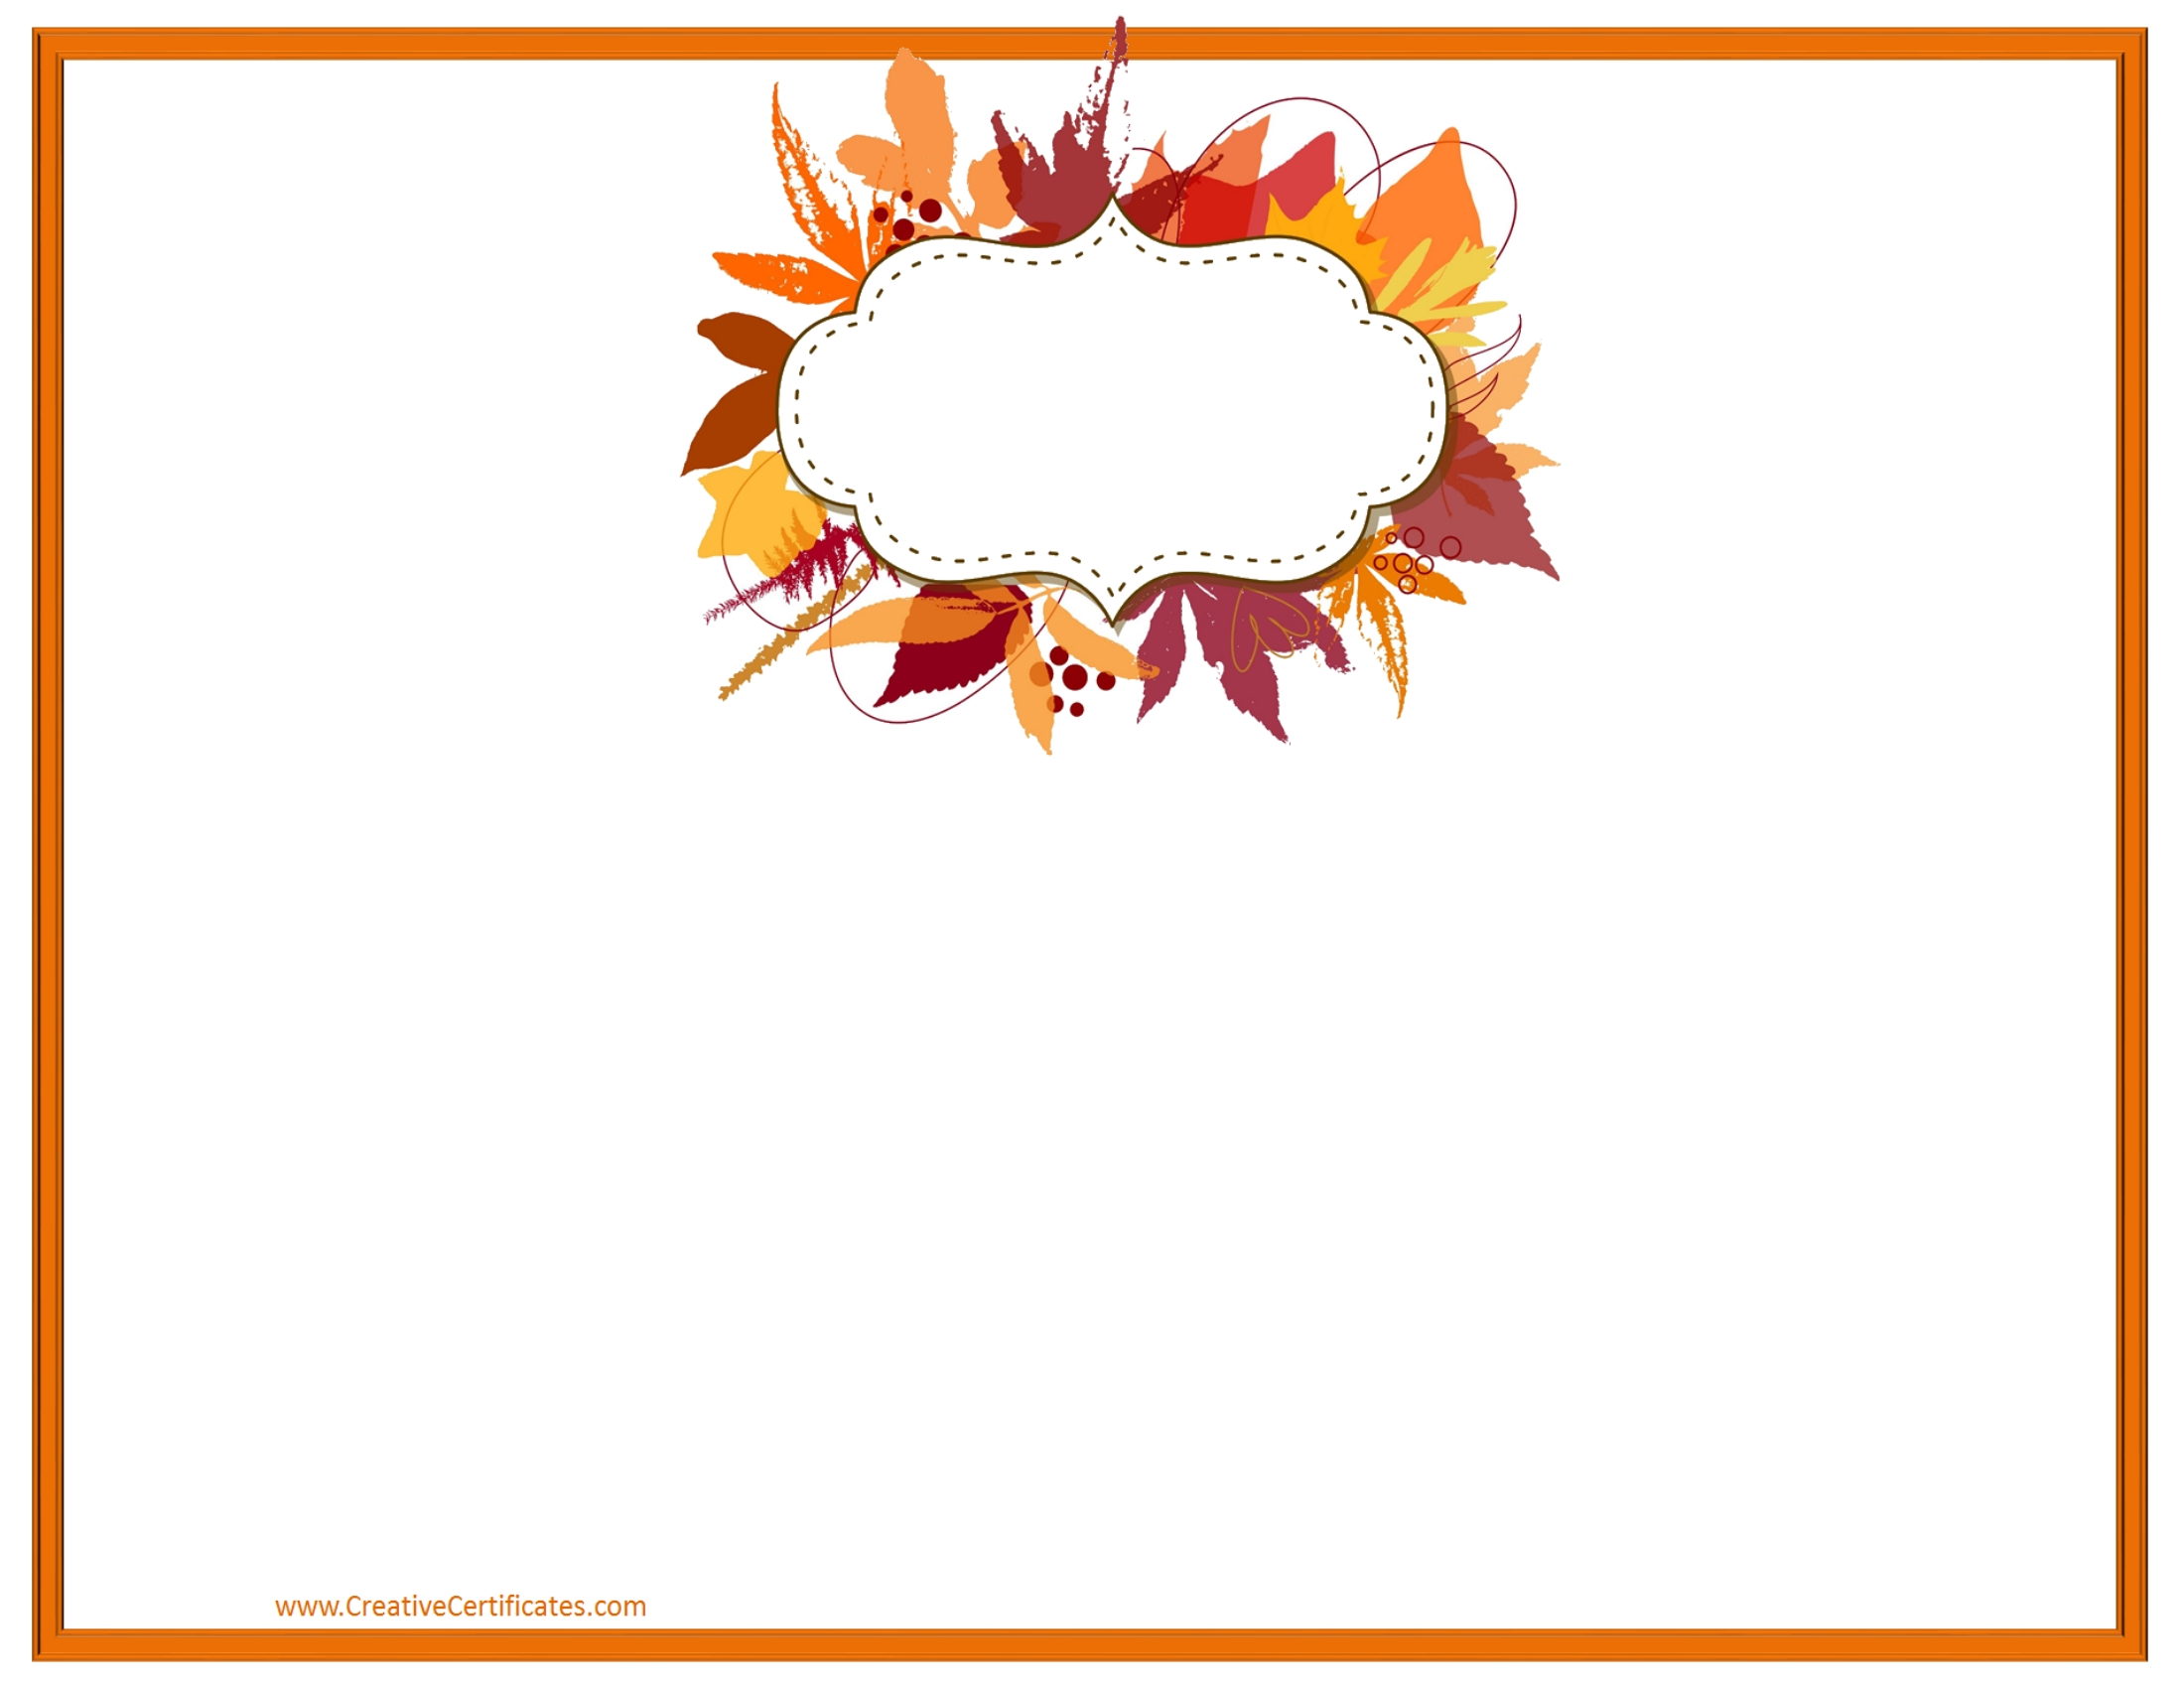 picture about Free Printable Thanksgiving Borders titled Thanksgiving Clipart Border No cost obtain excellent